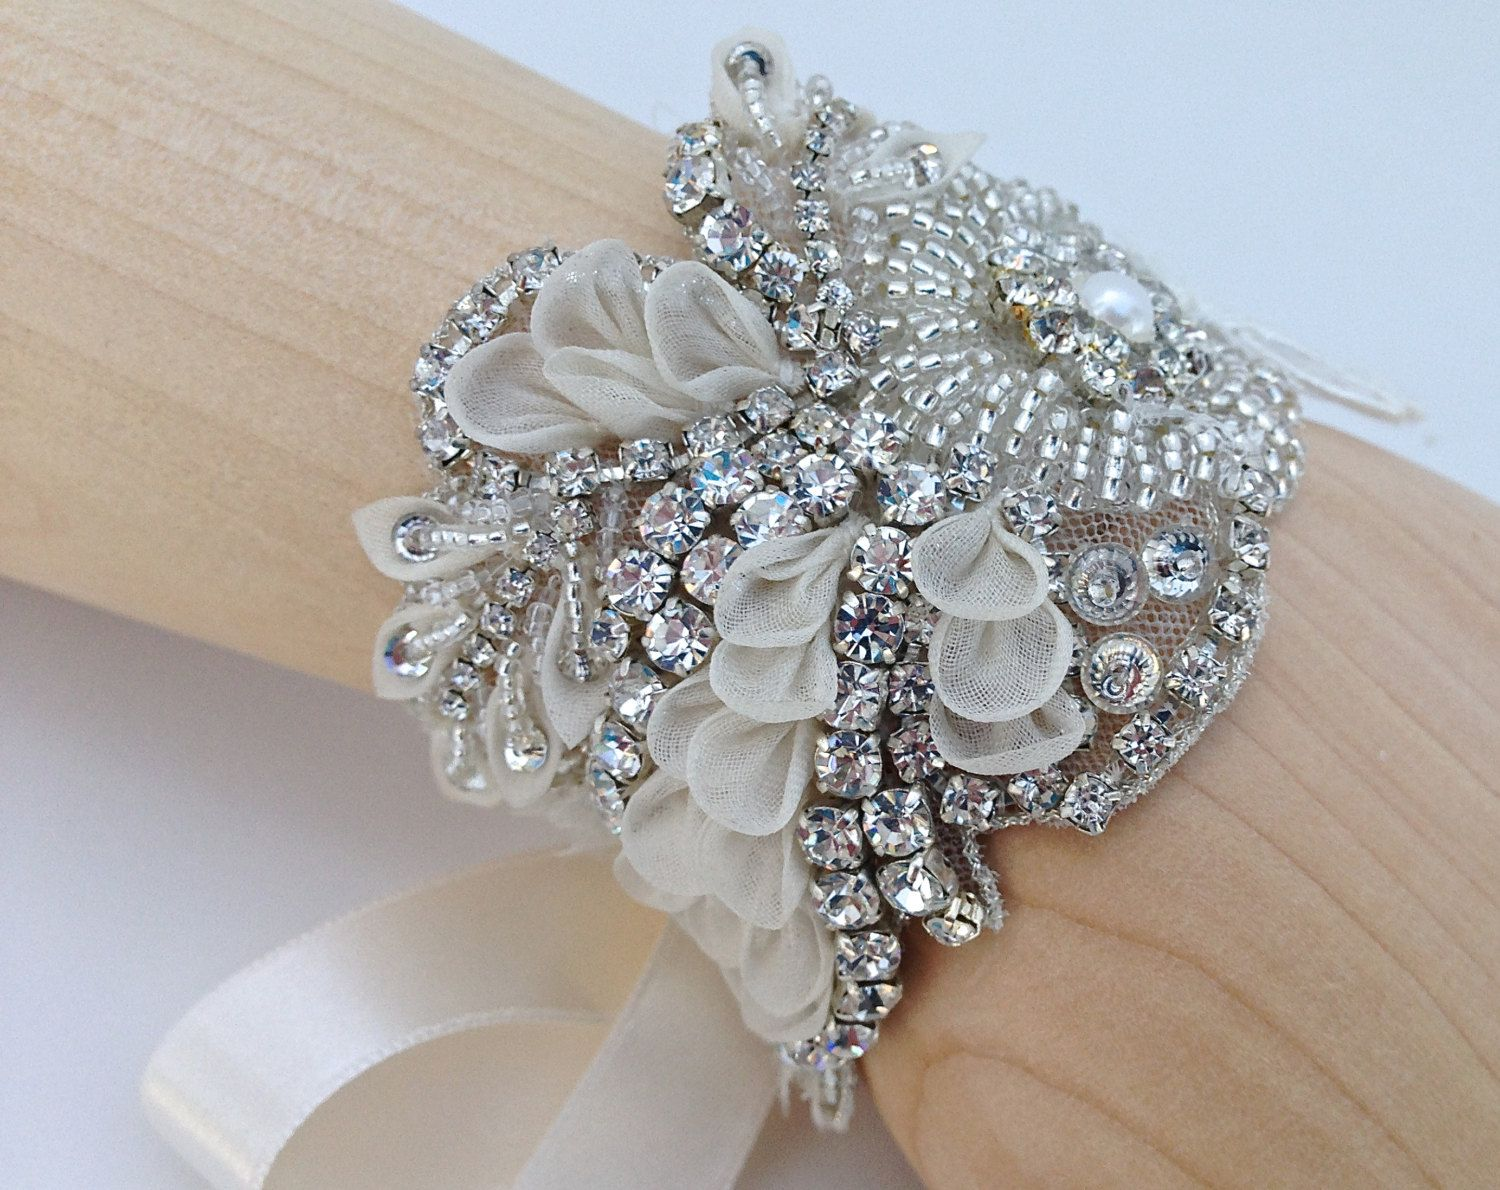 Couture Crystal And Lace Beaded Bridal Cuff Bracelet Pearls Ribbon Tie Wedding Statement